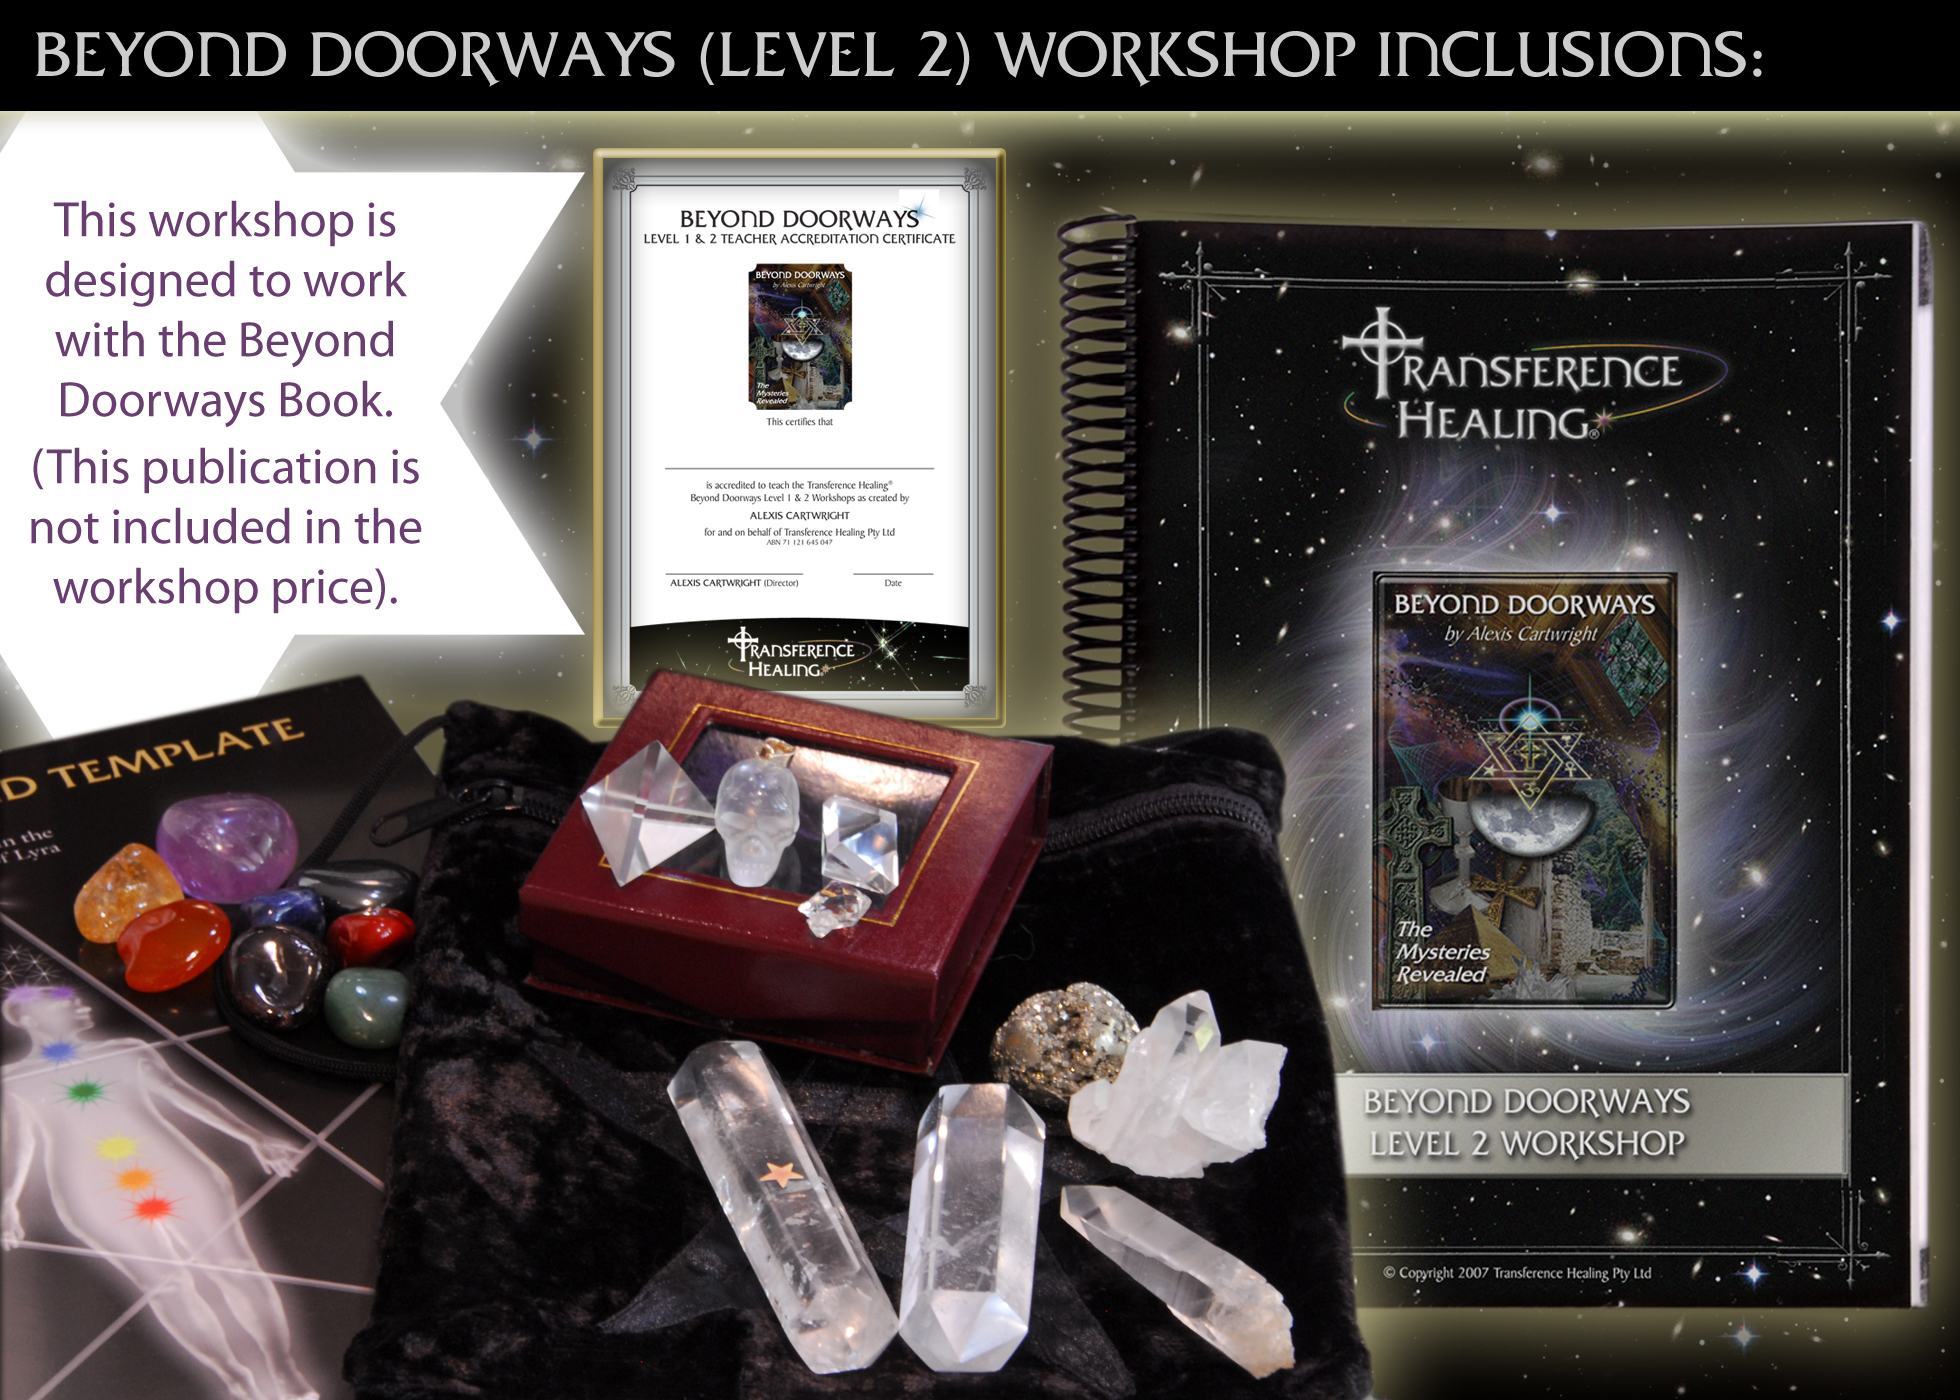 BEYOND DOORWAYS LEVEL 2 INCLUSIONS